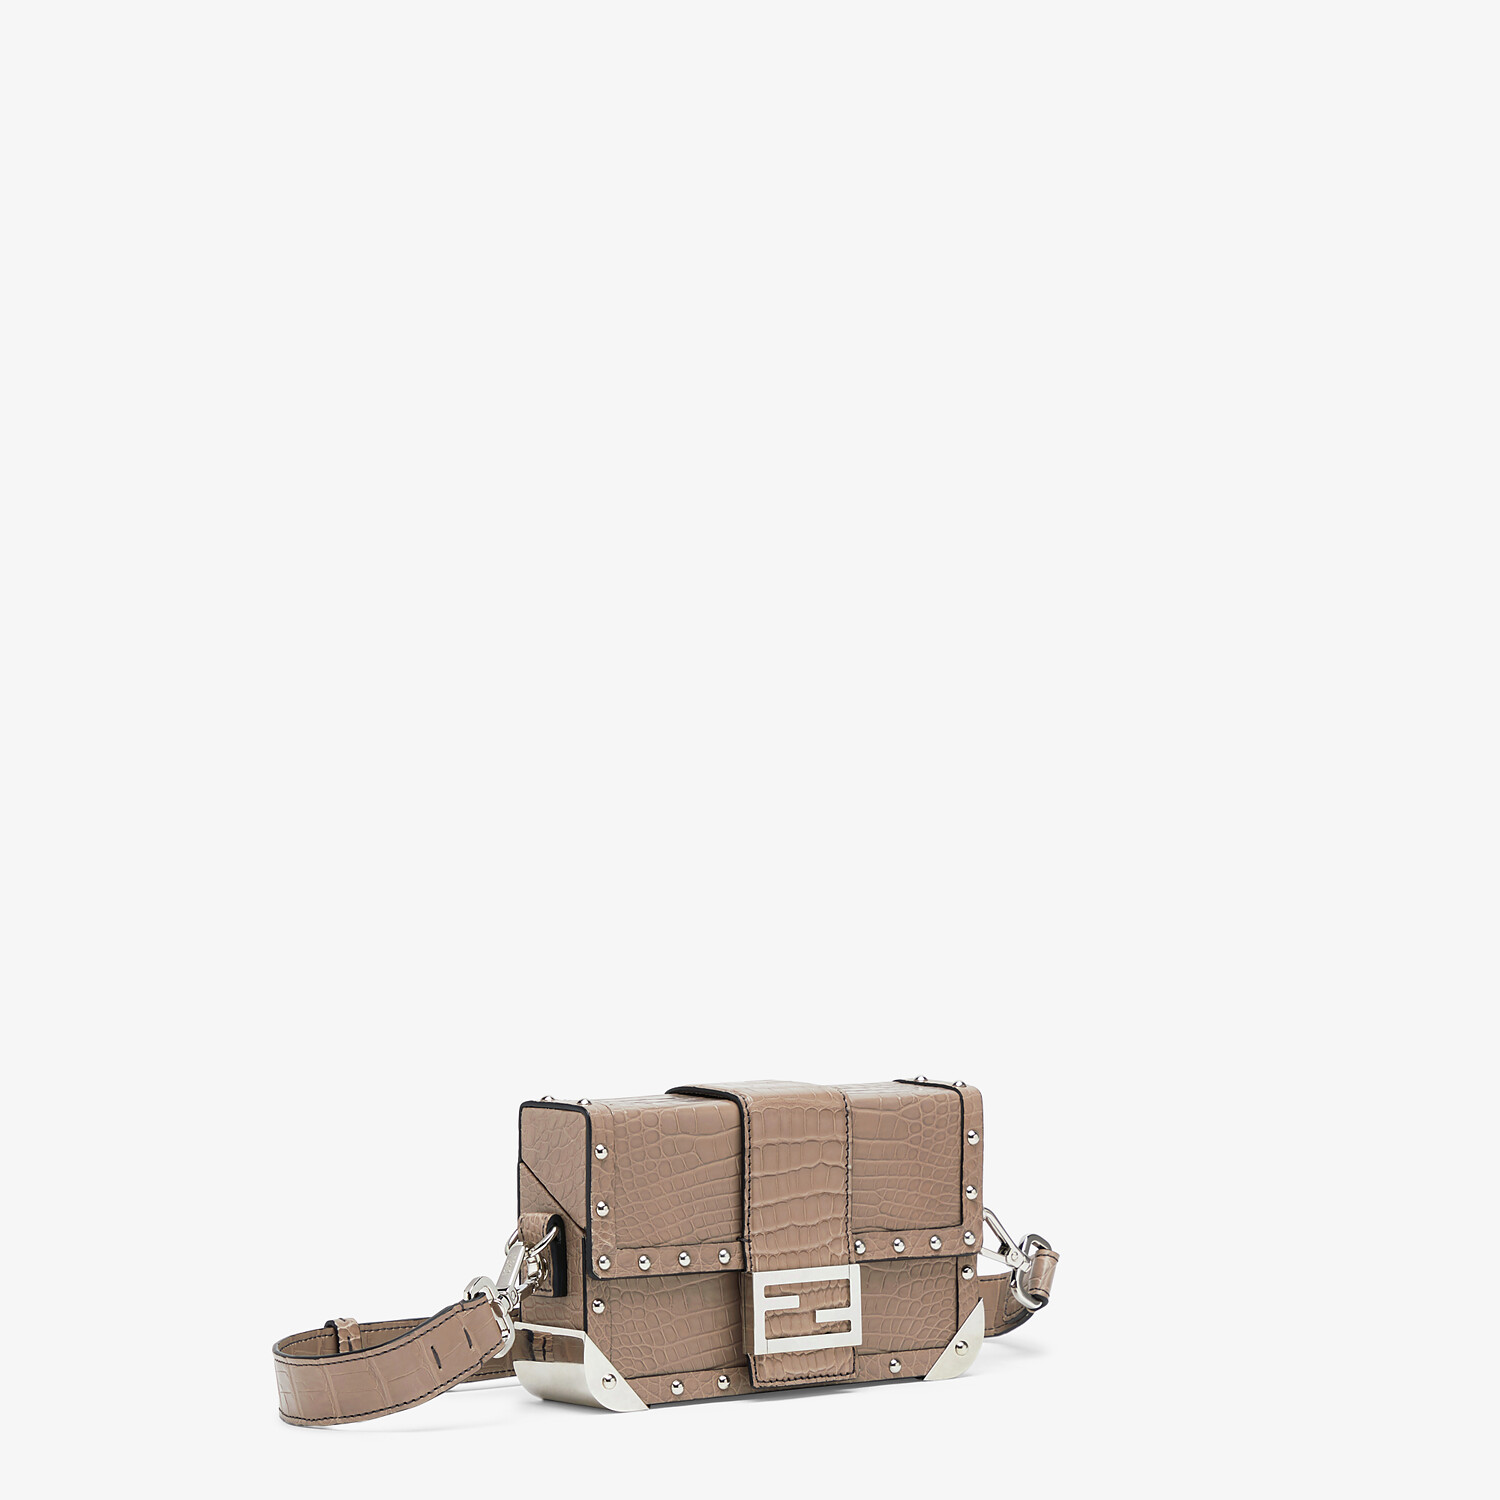 FENDI BAGUETTE TRUNK MINI - Beige alligator leather bag - view 2 detail